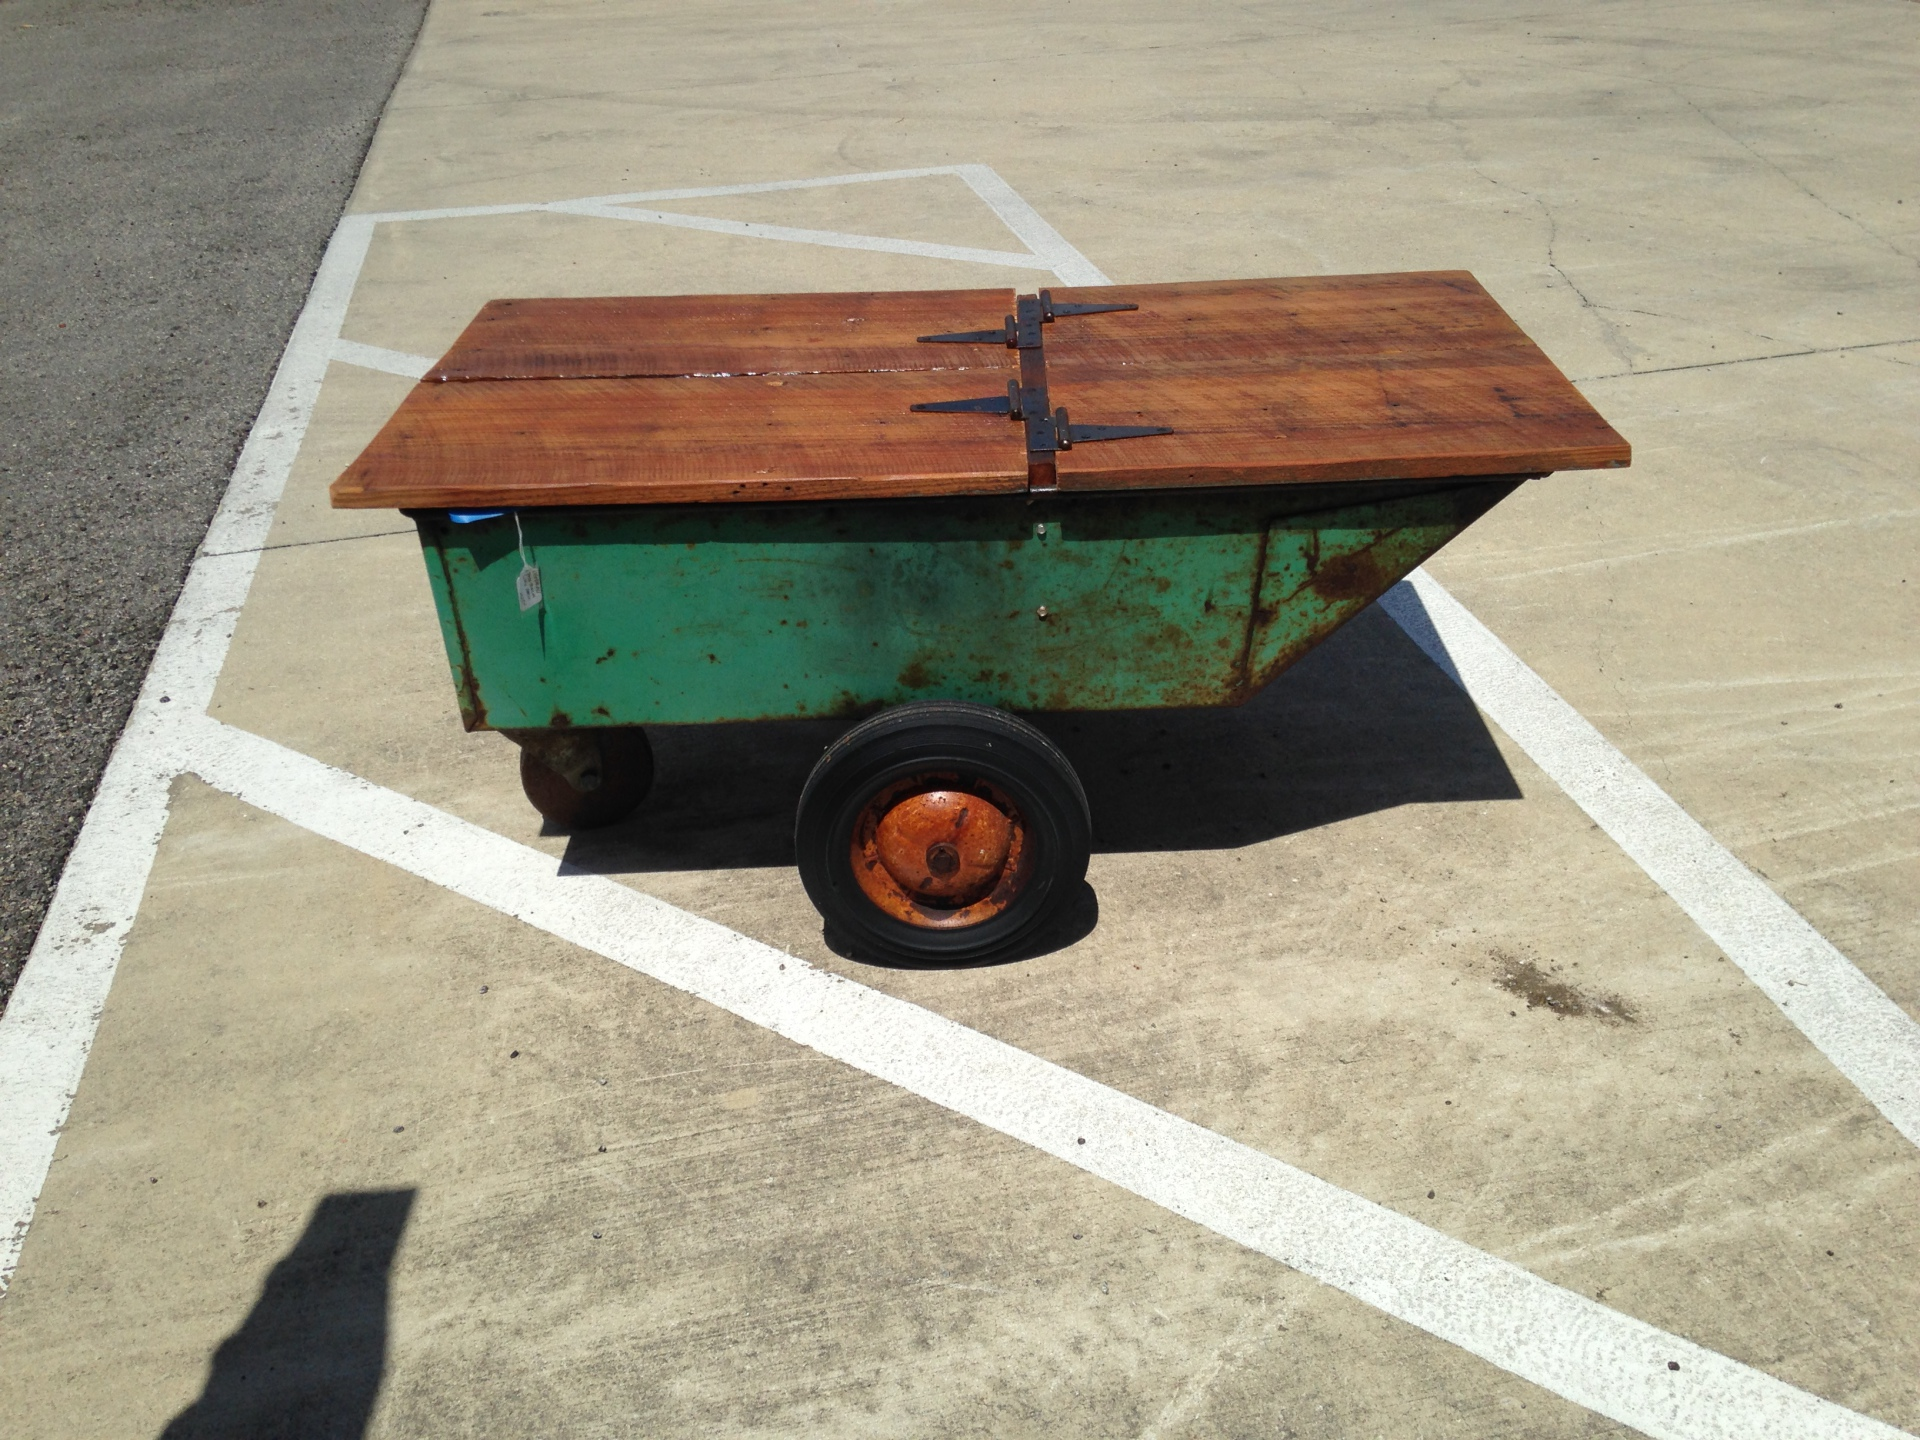 Old Metal Cart - Now a Coffee Table